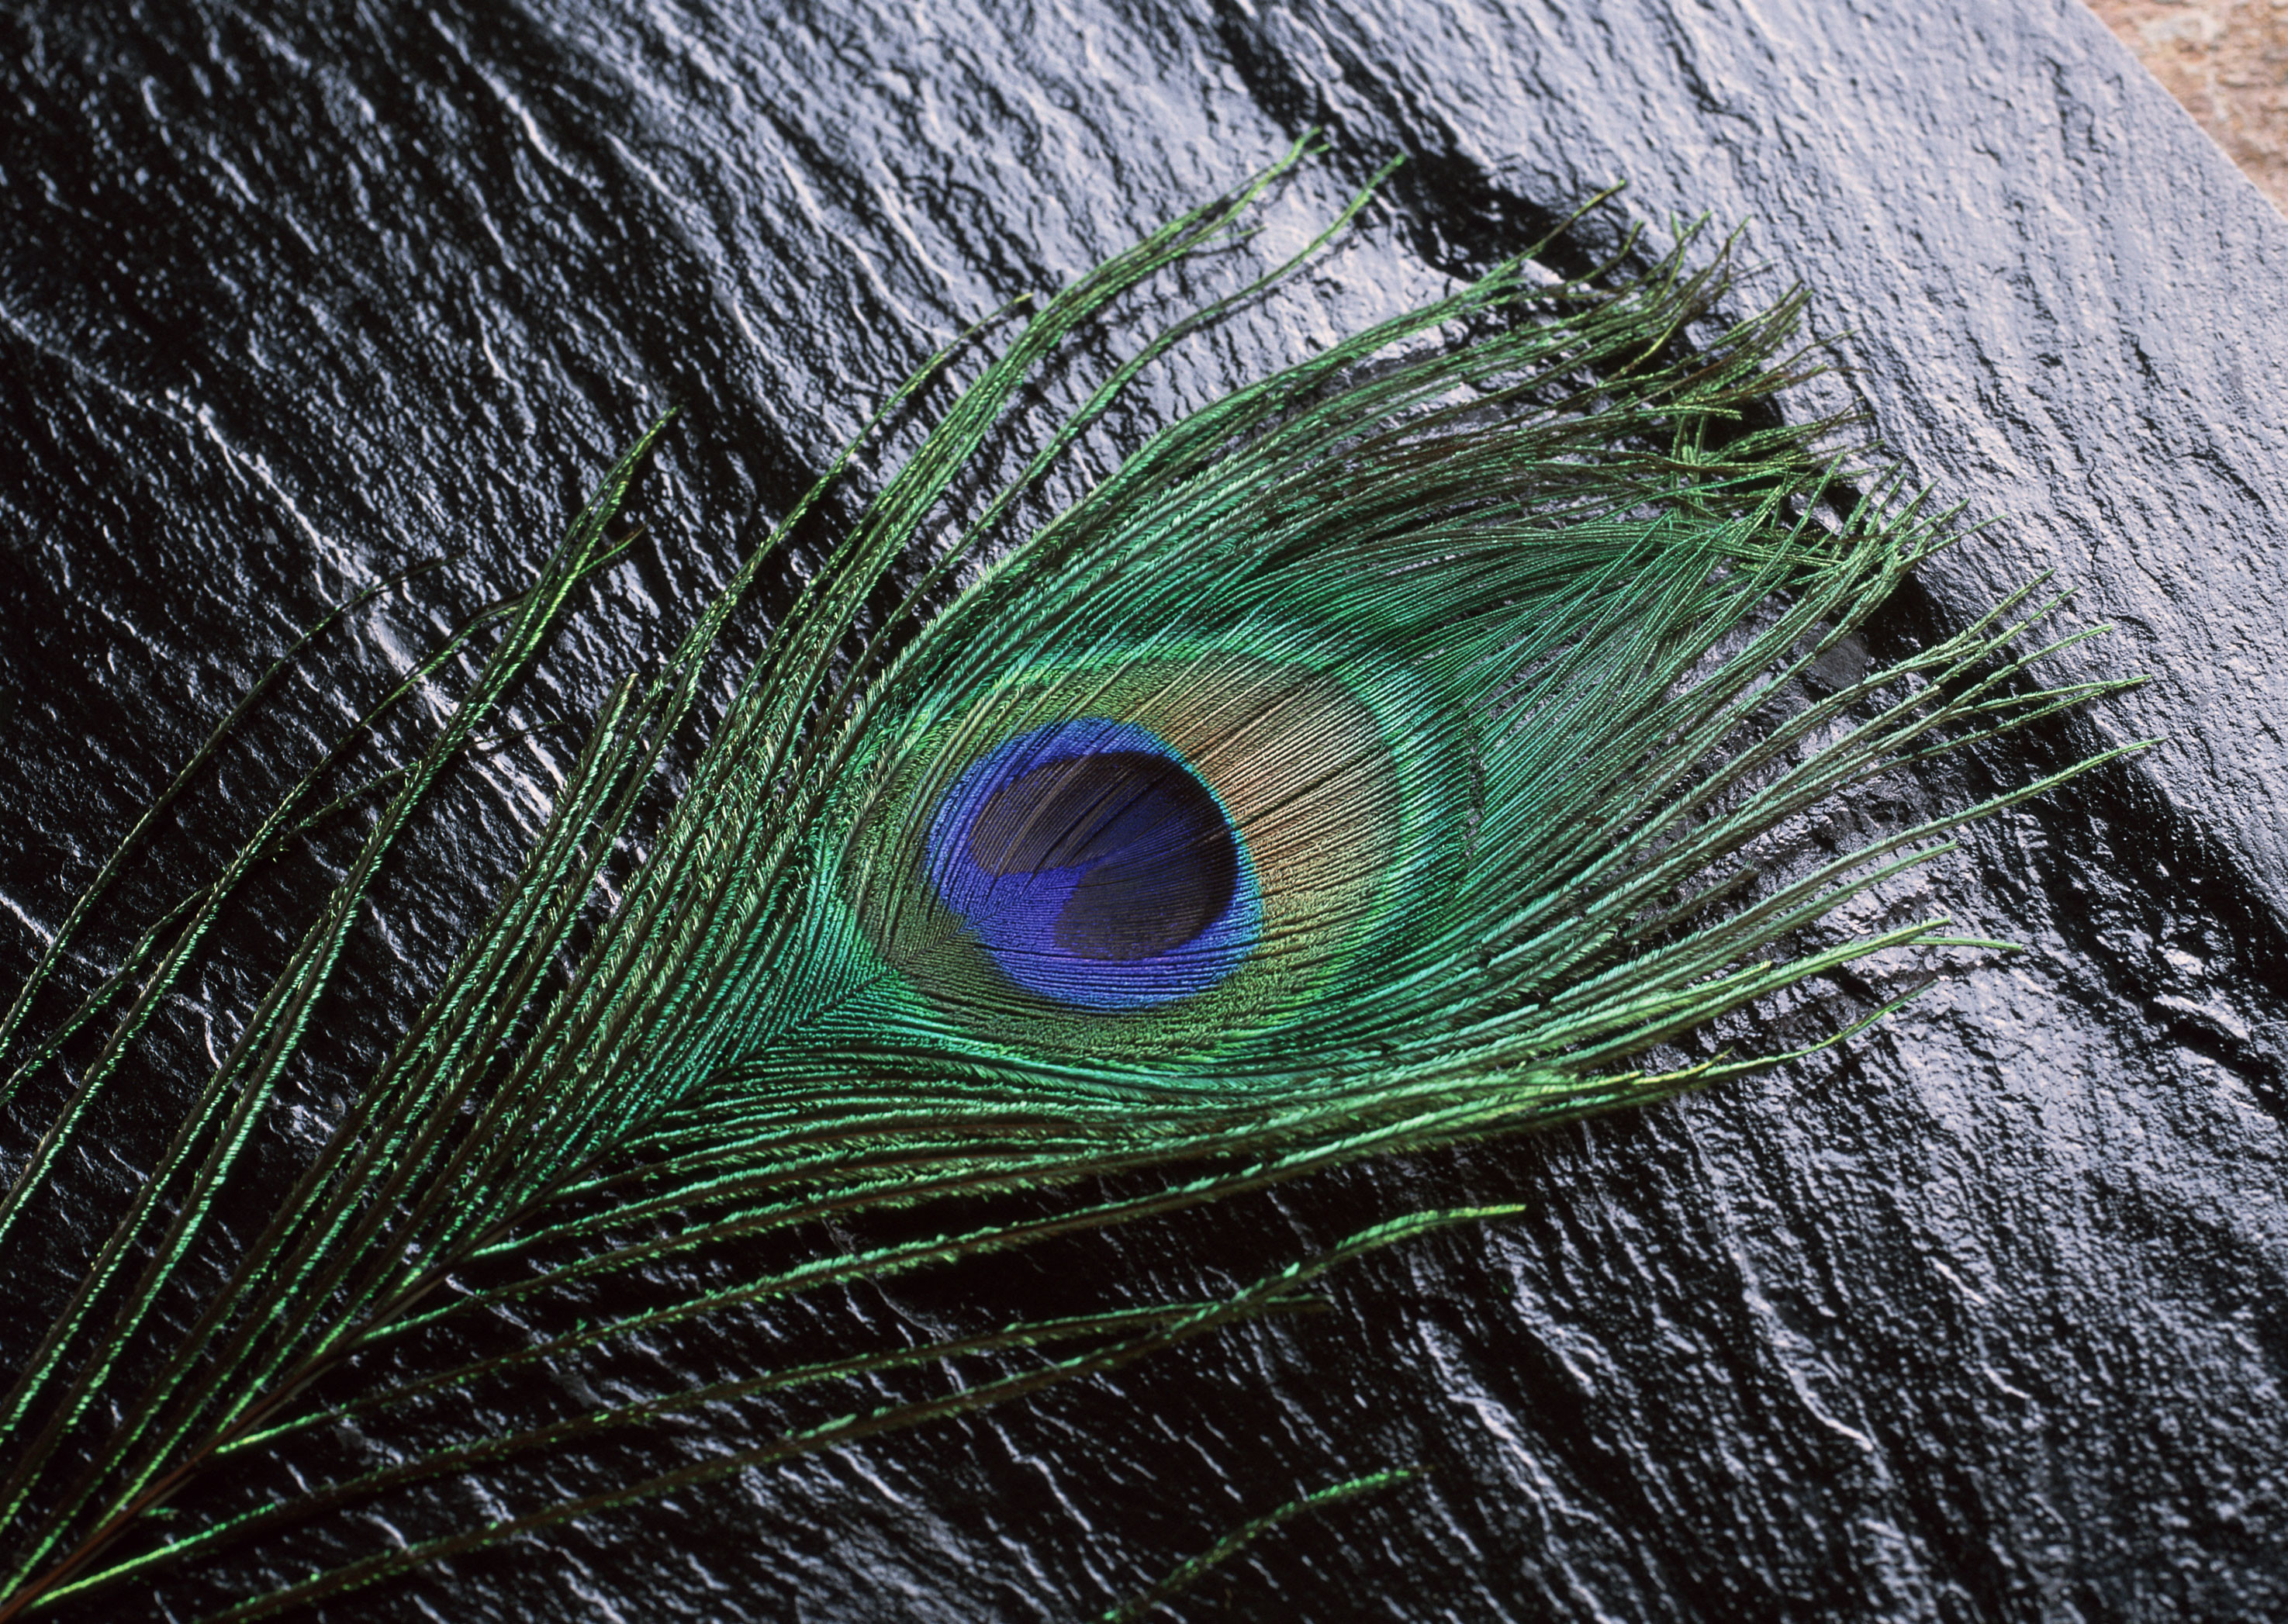 Mor Pankh Hd Wallpaper: Wallpapers Of Peacock Feathers HD ·①